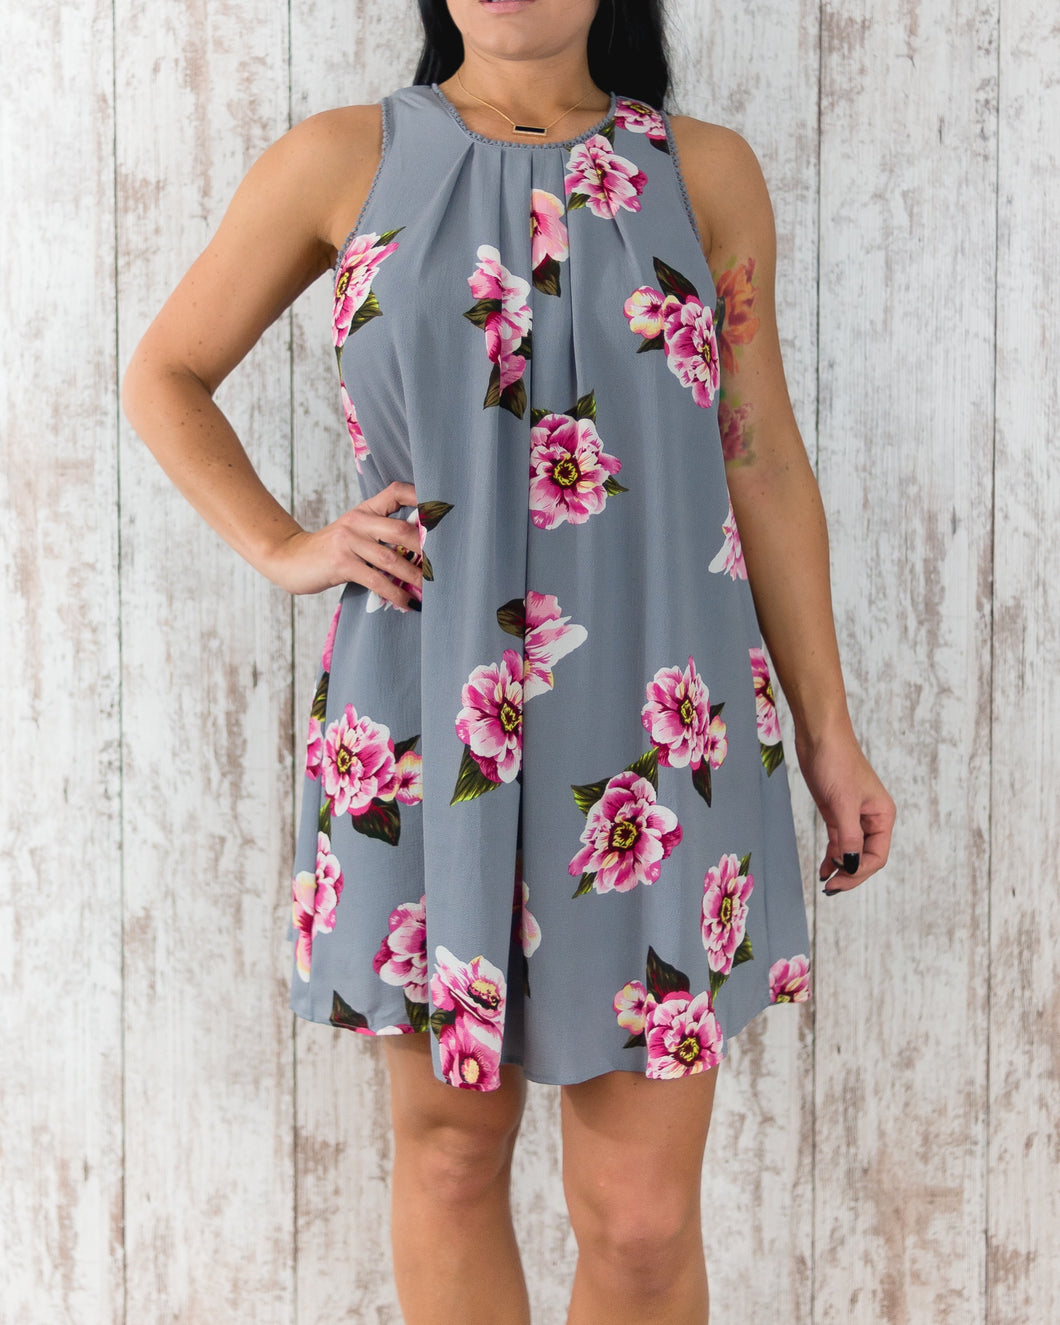 Floral Print Sleeveless Keyhole Dress with Crochet Details